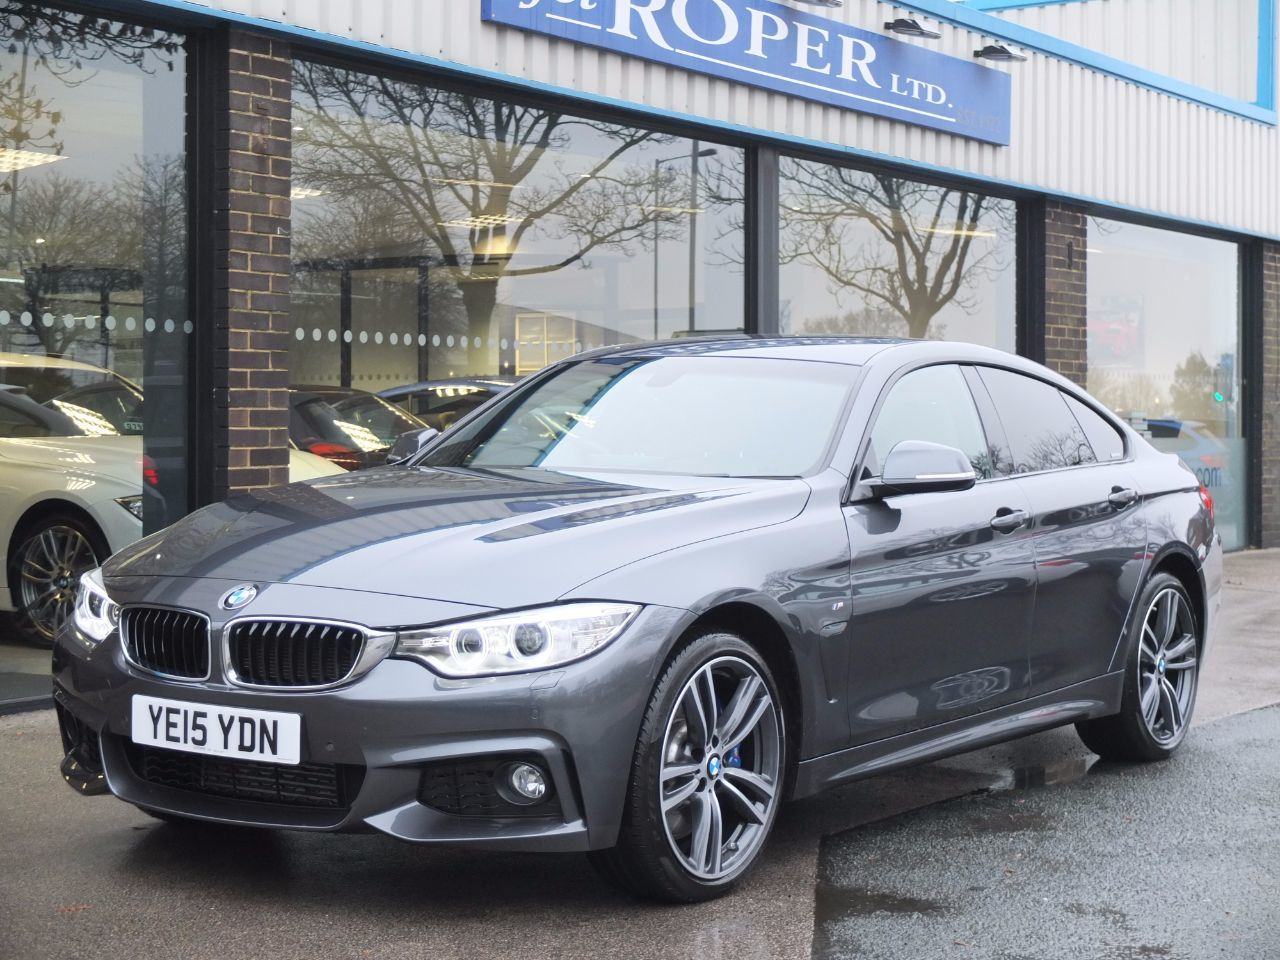 BMW 4 Series 3.0 Gran Coupe 435d xDrive M Sport Auto (M Sport Plus and Media) Coupe Diesel Mineral Grey Metallic